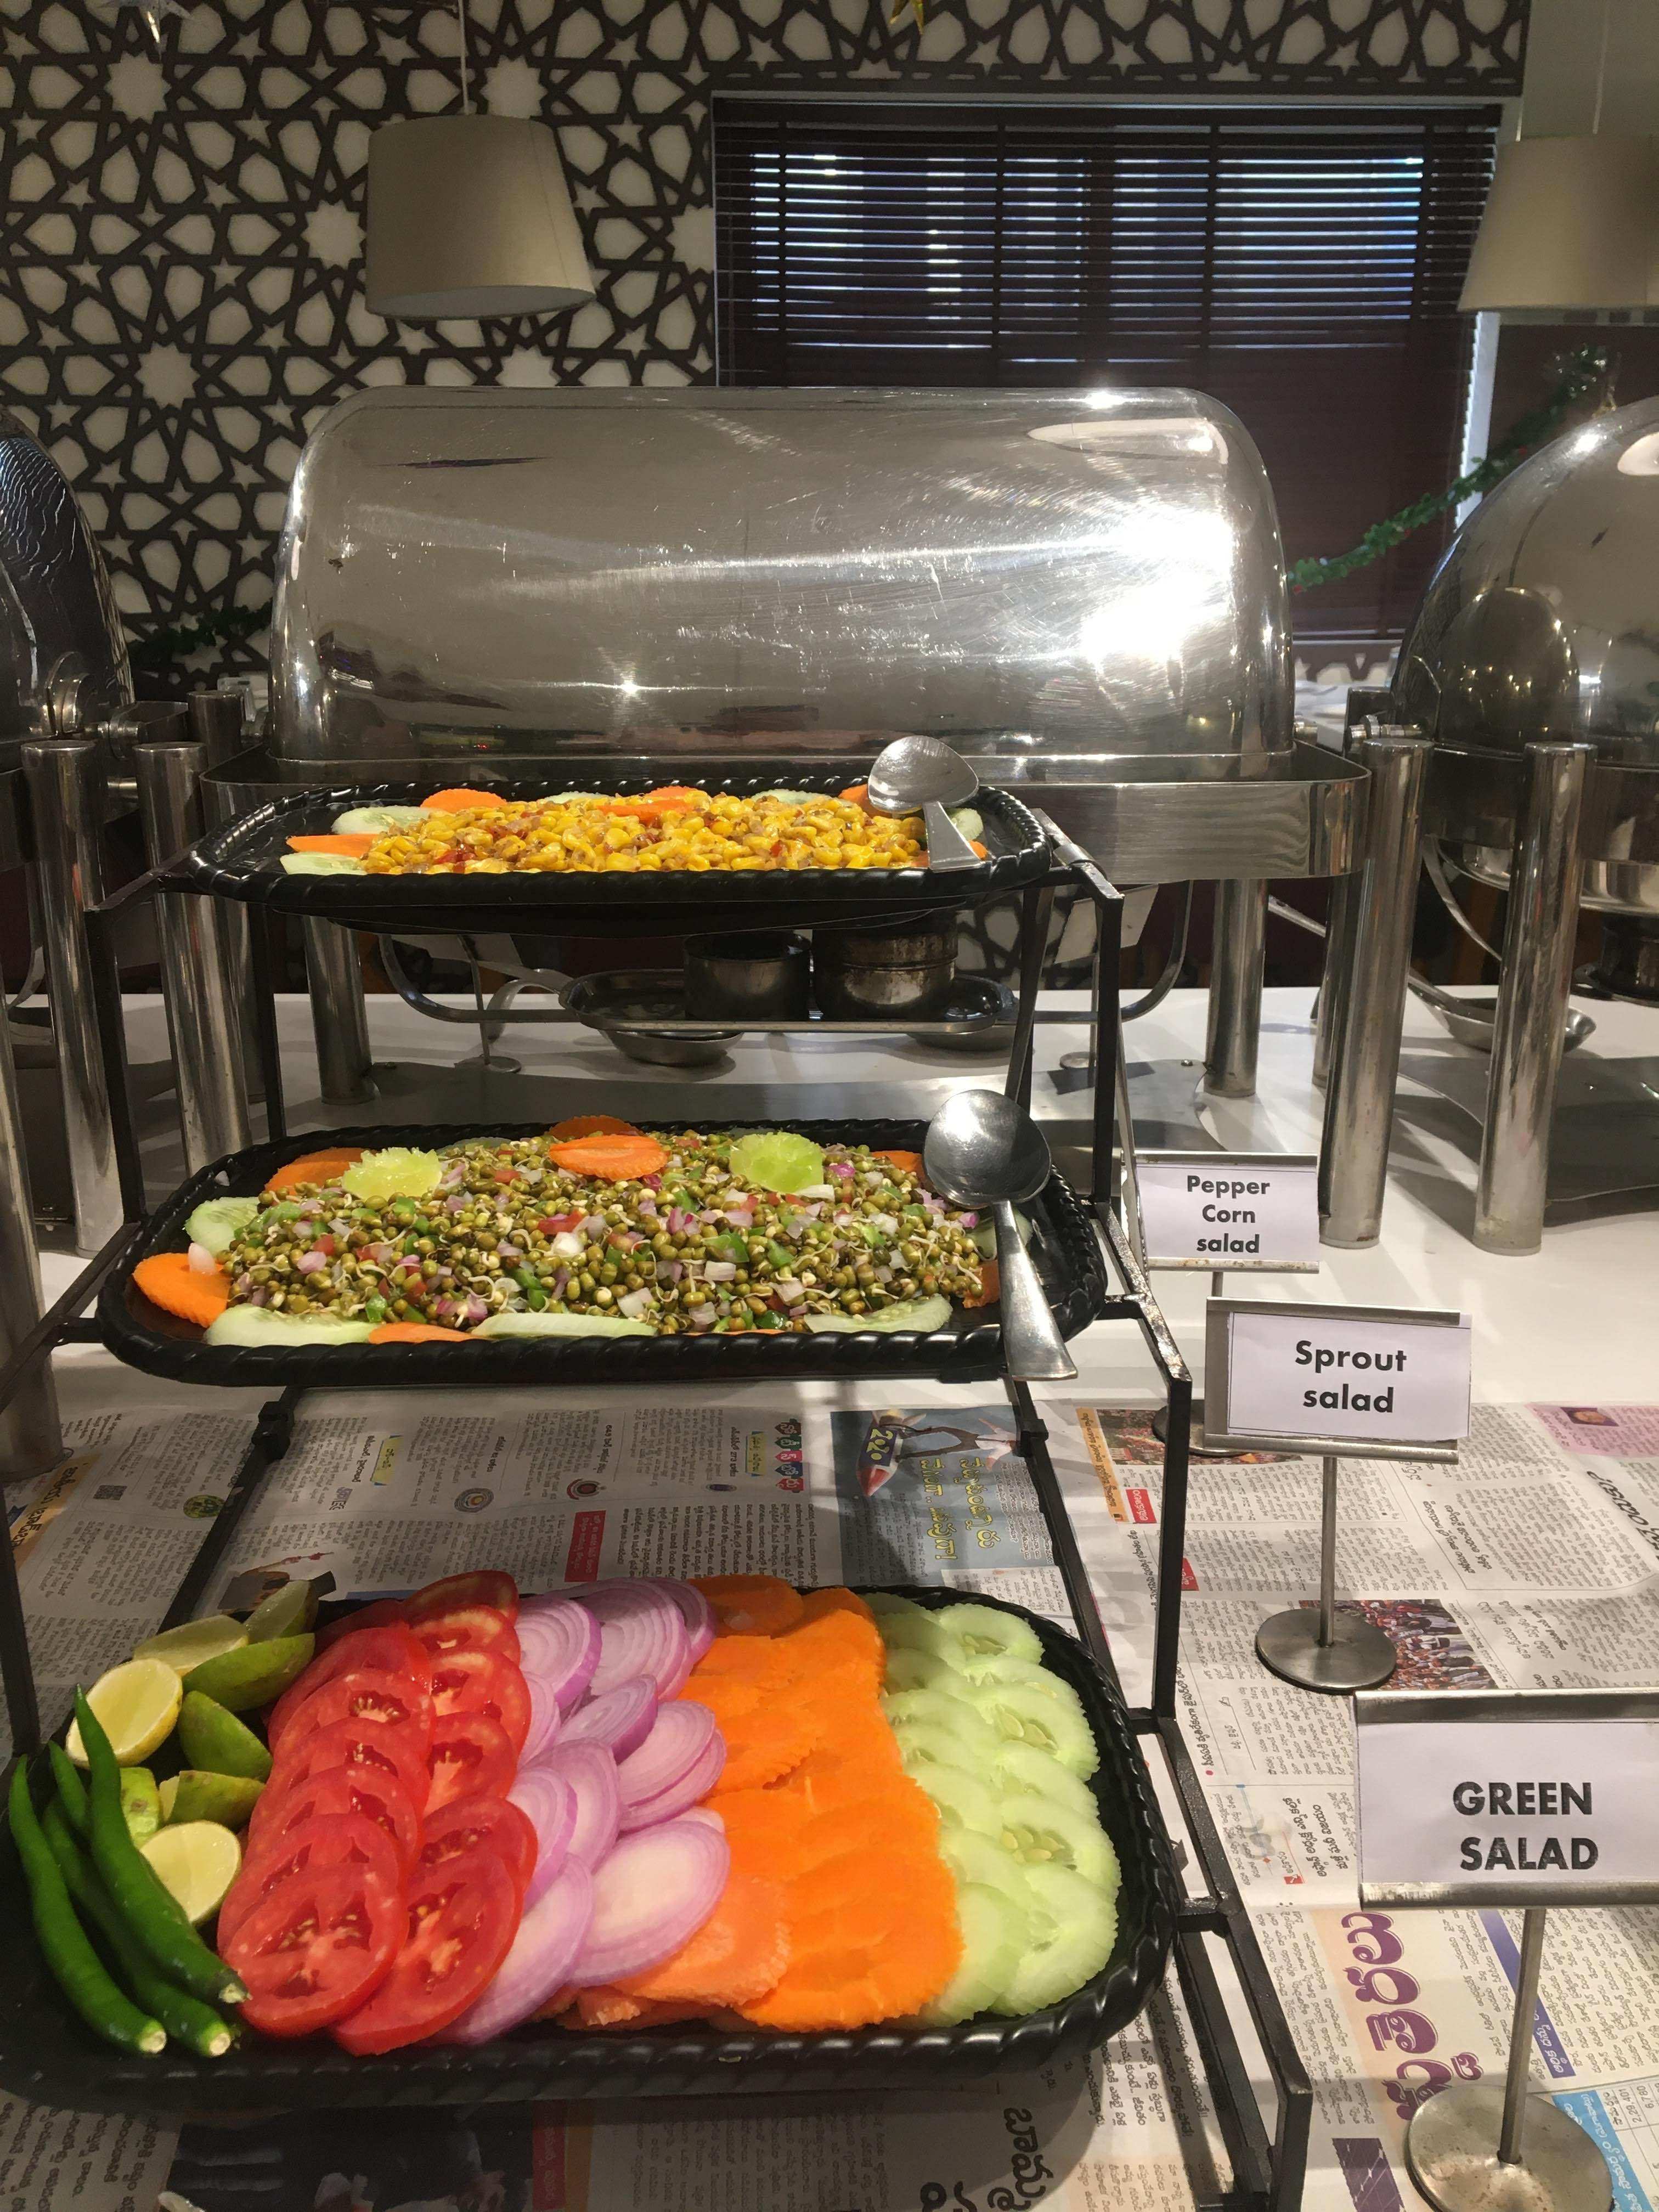 Food,Cuisine,Dish,Meal,Buffet,Ingredient,Brunch,Take-out food,Comfort food